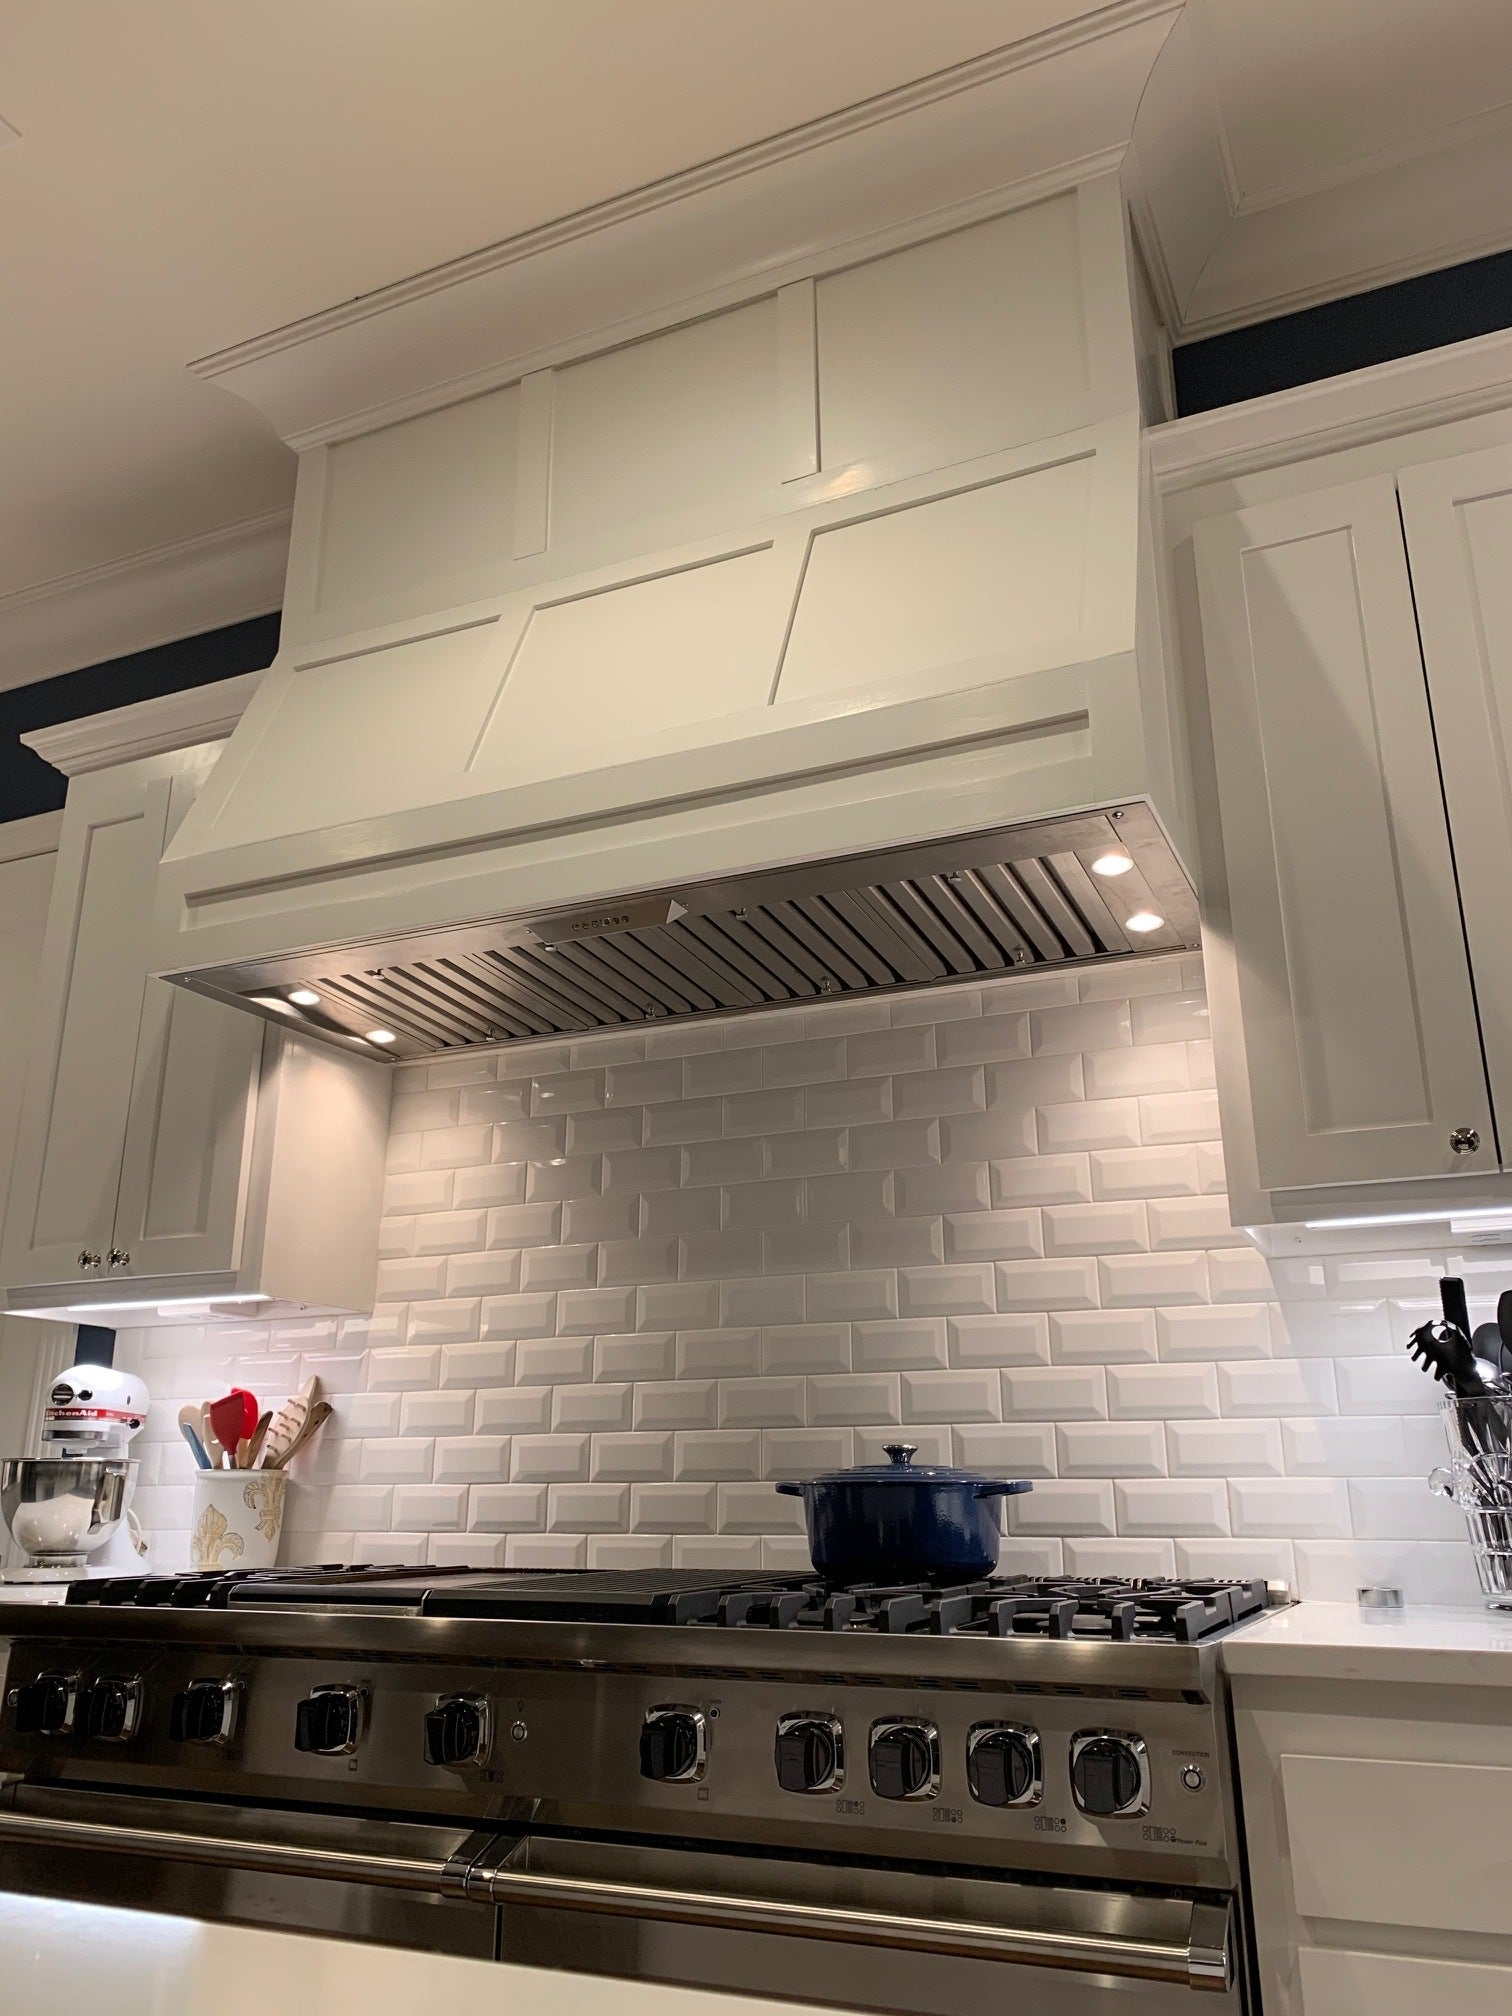 How To Install A Range Hood Insert 4 Simple Steps